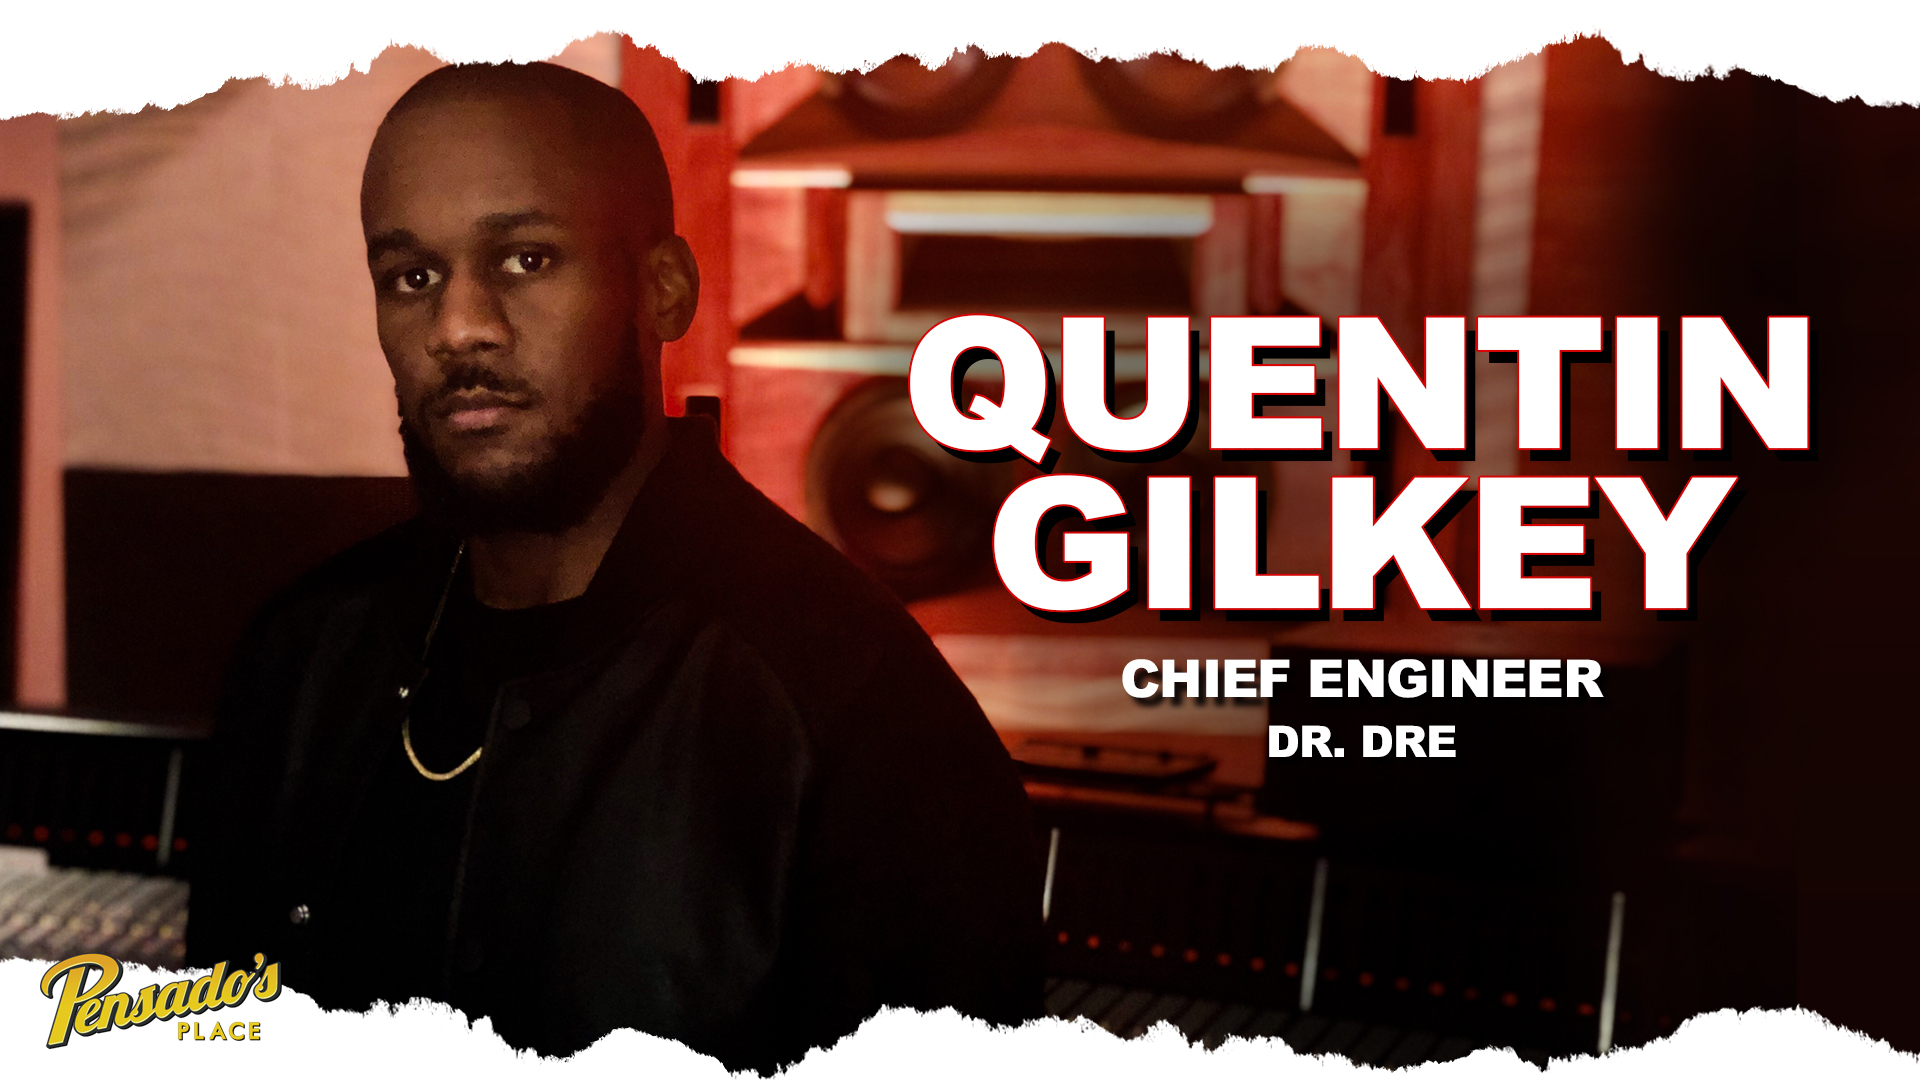 Chief Engineer for Dr. Dre, Quentin Gilkey